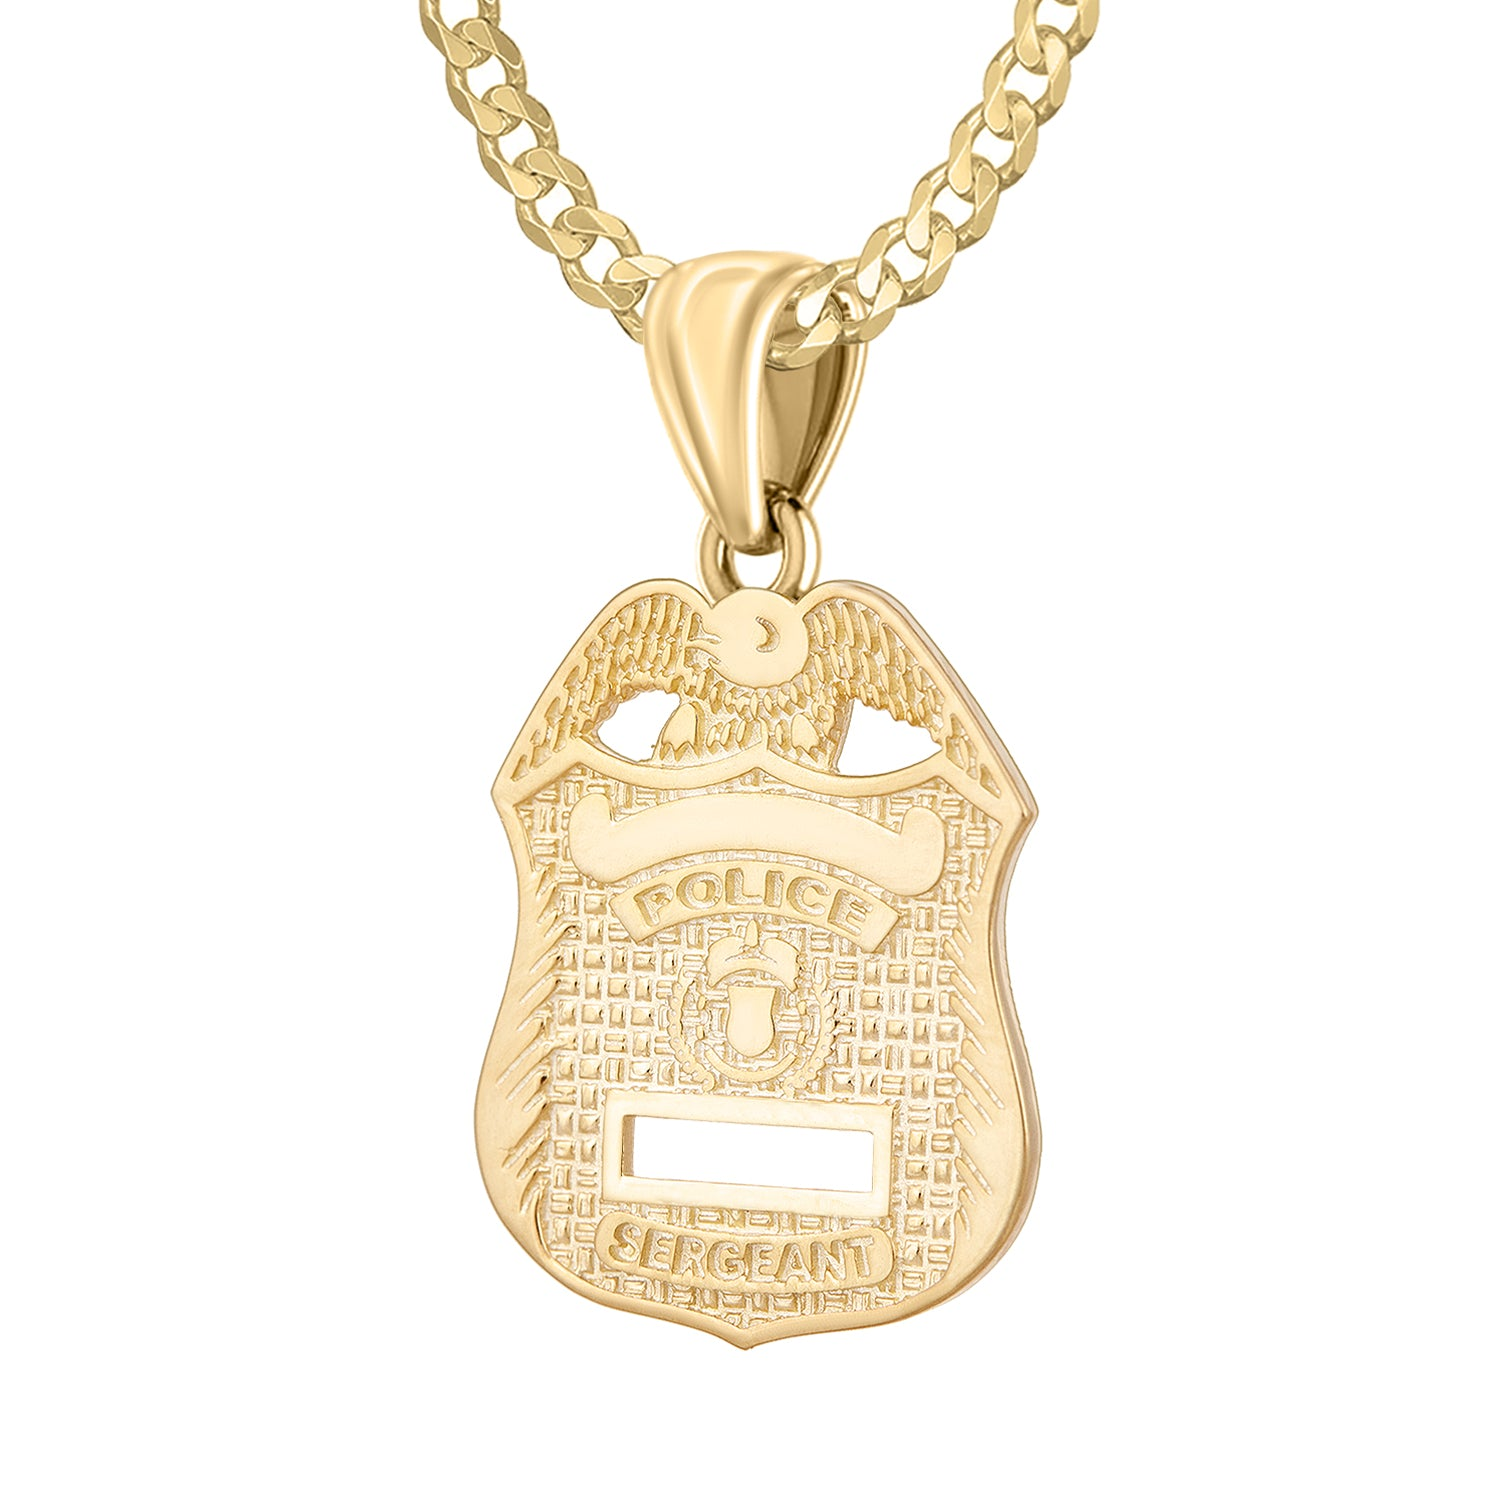 Police Badge Necklace In Gold For Men - 2.6mm Curb Chain